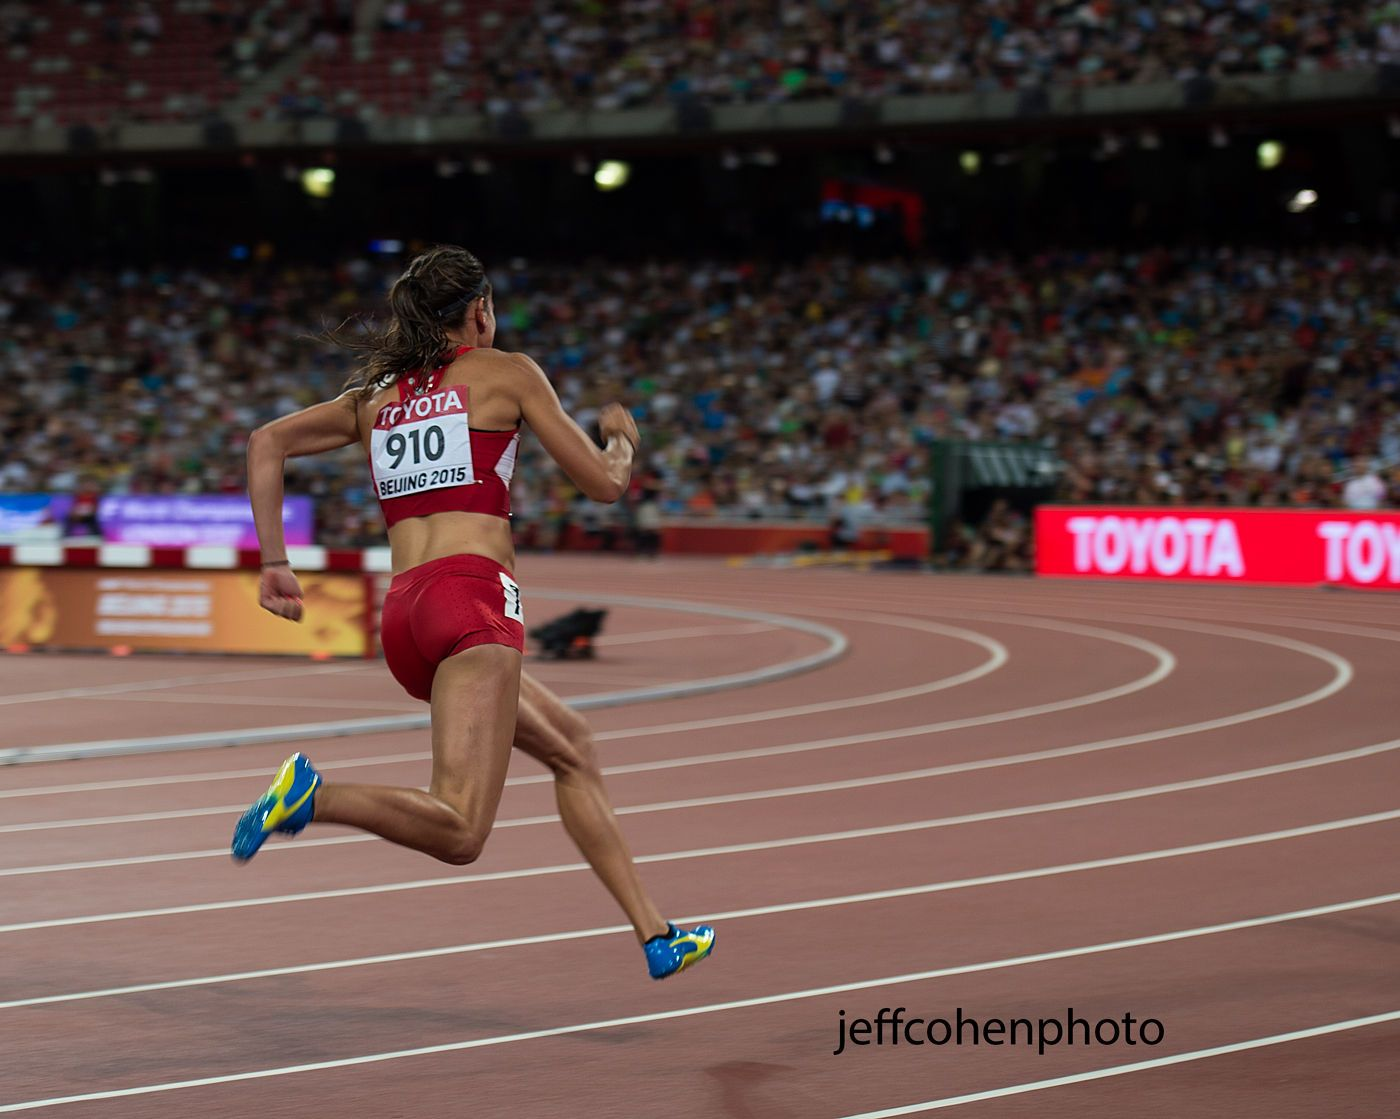 1beijing2015_night__5_prandini_200m_heat_jeff_cohen_photo_19339_web.jpg